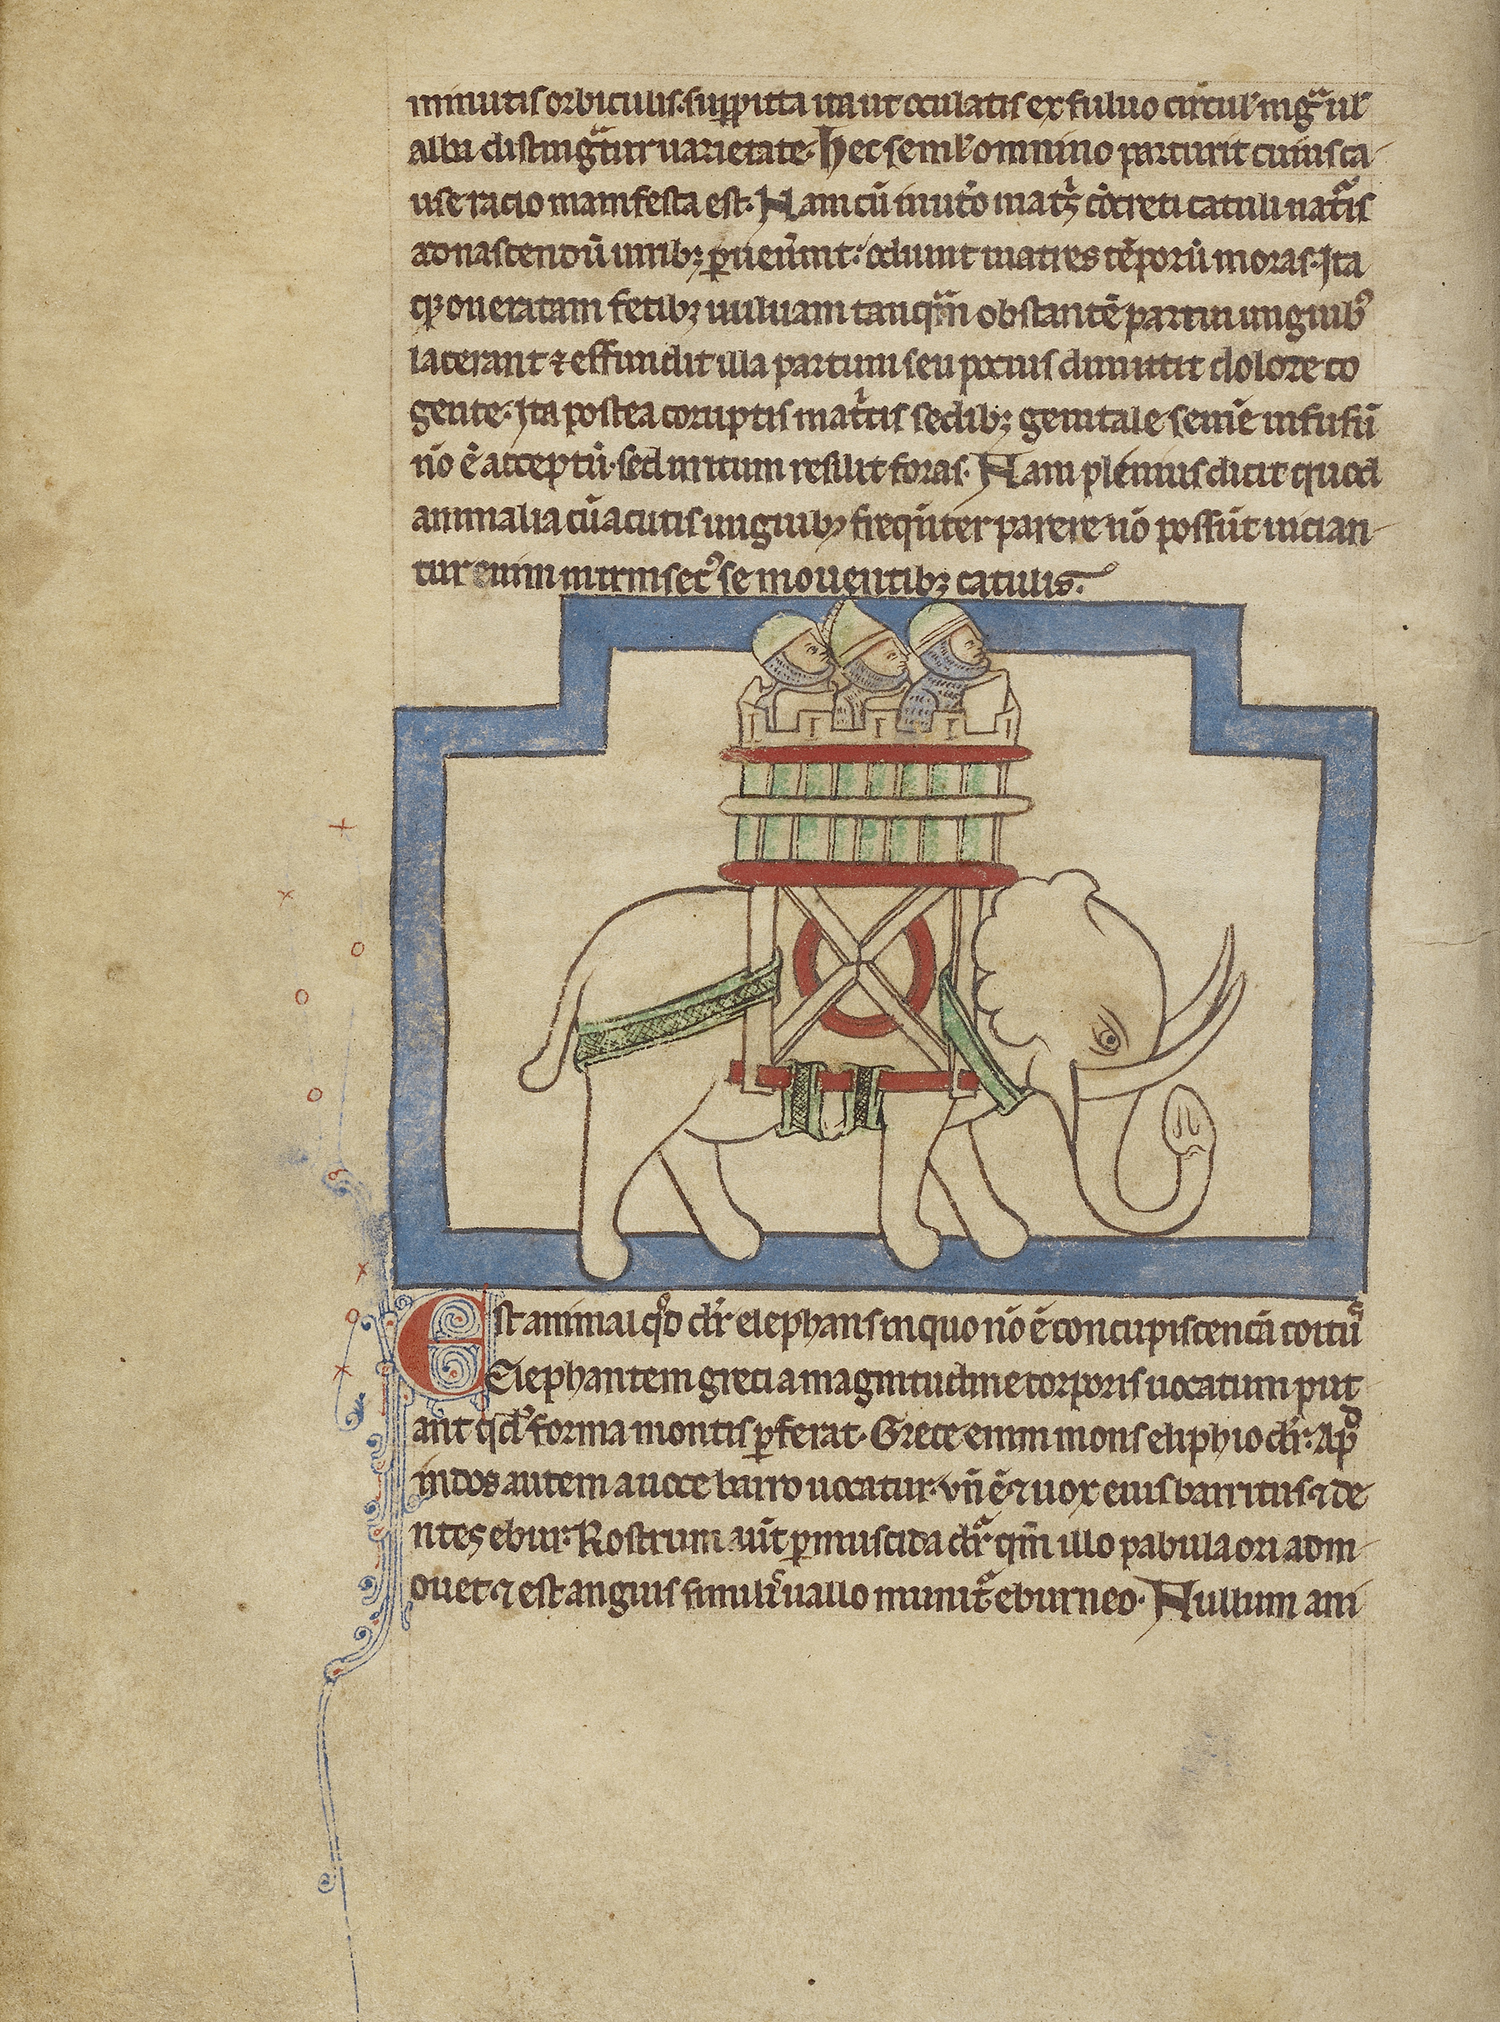 Figure 4: An Elephant, about 1250 - 1260. Pen-and-ink drawings tinted with body color and translucent washes on parchment. The J. Paul Getty Museum, Los Angeles, Ms. 100 (2007.16), fol. 17V.